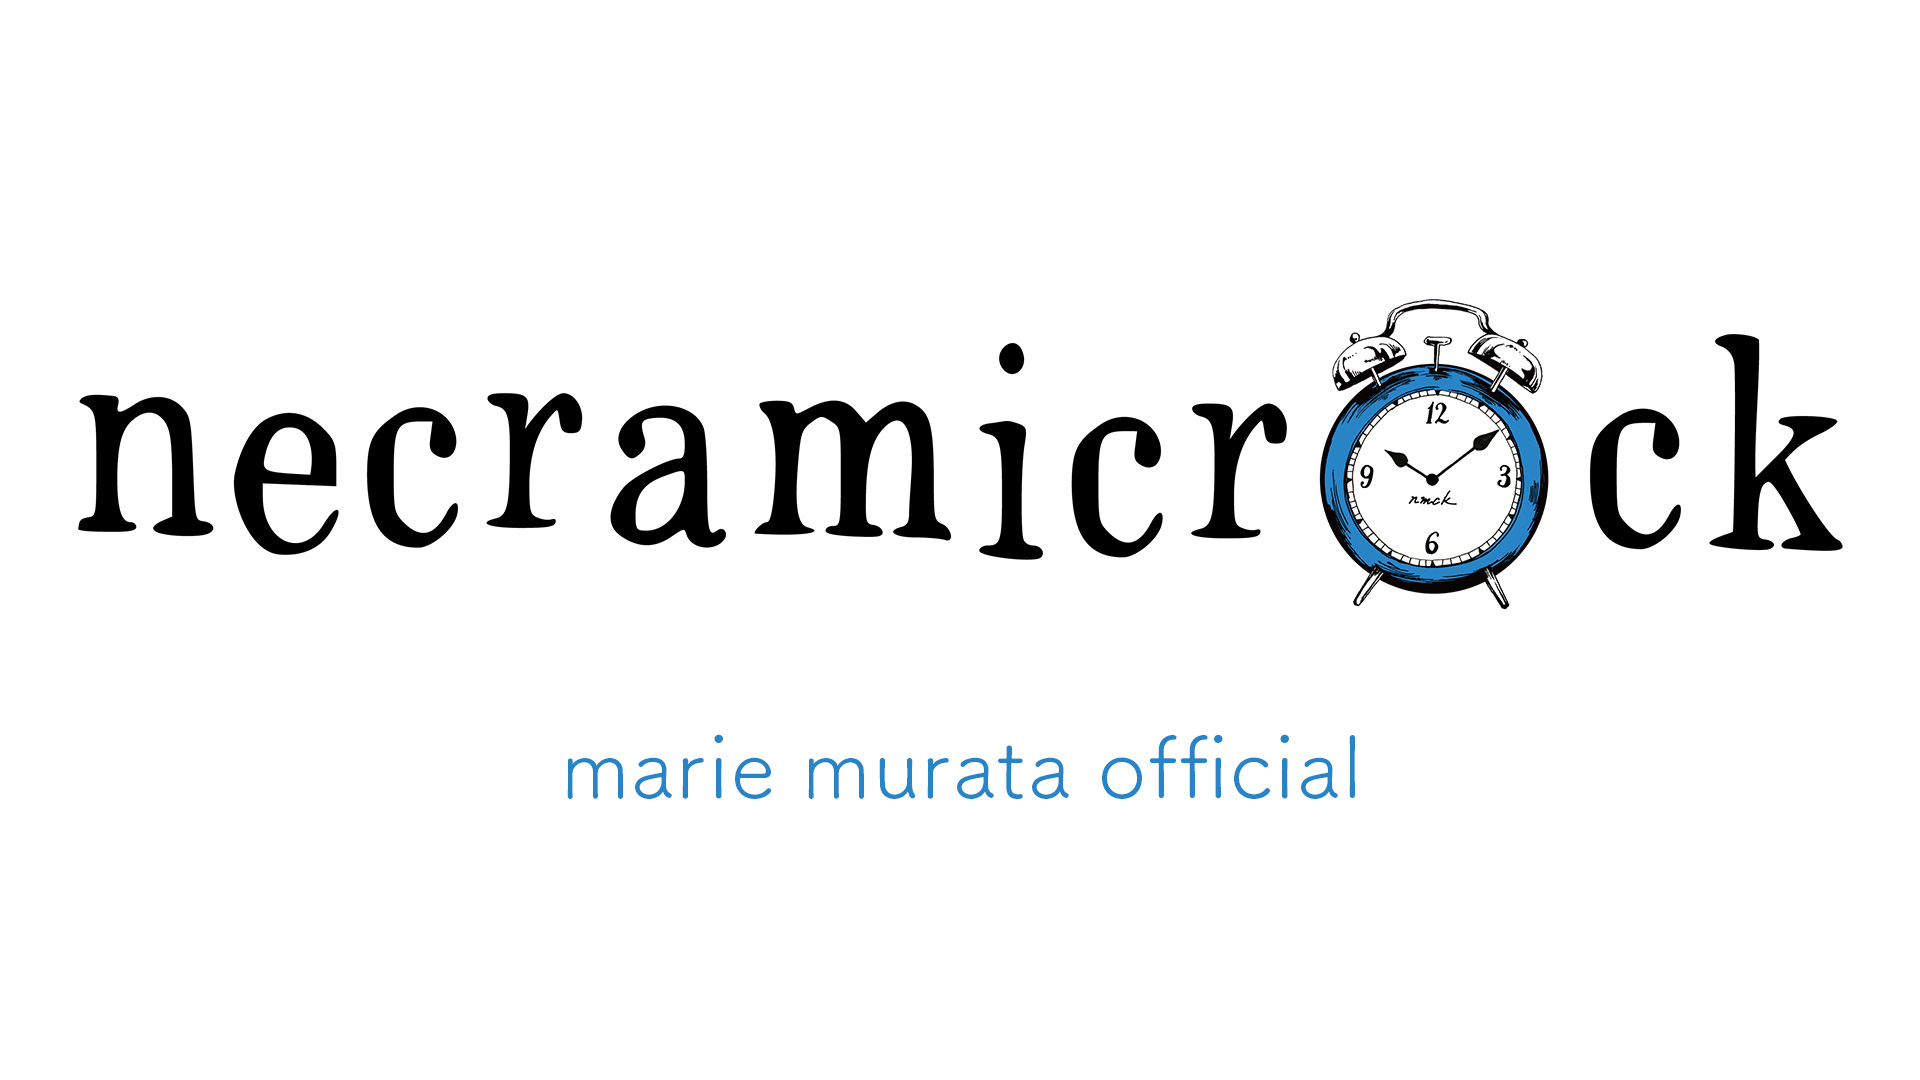 necramicrock official website